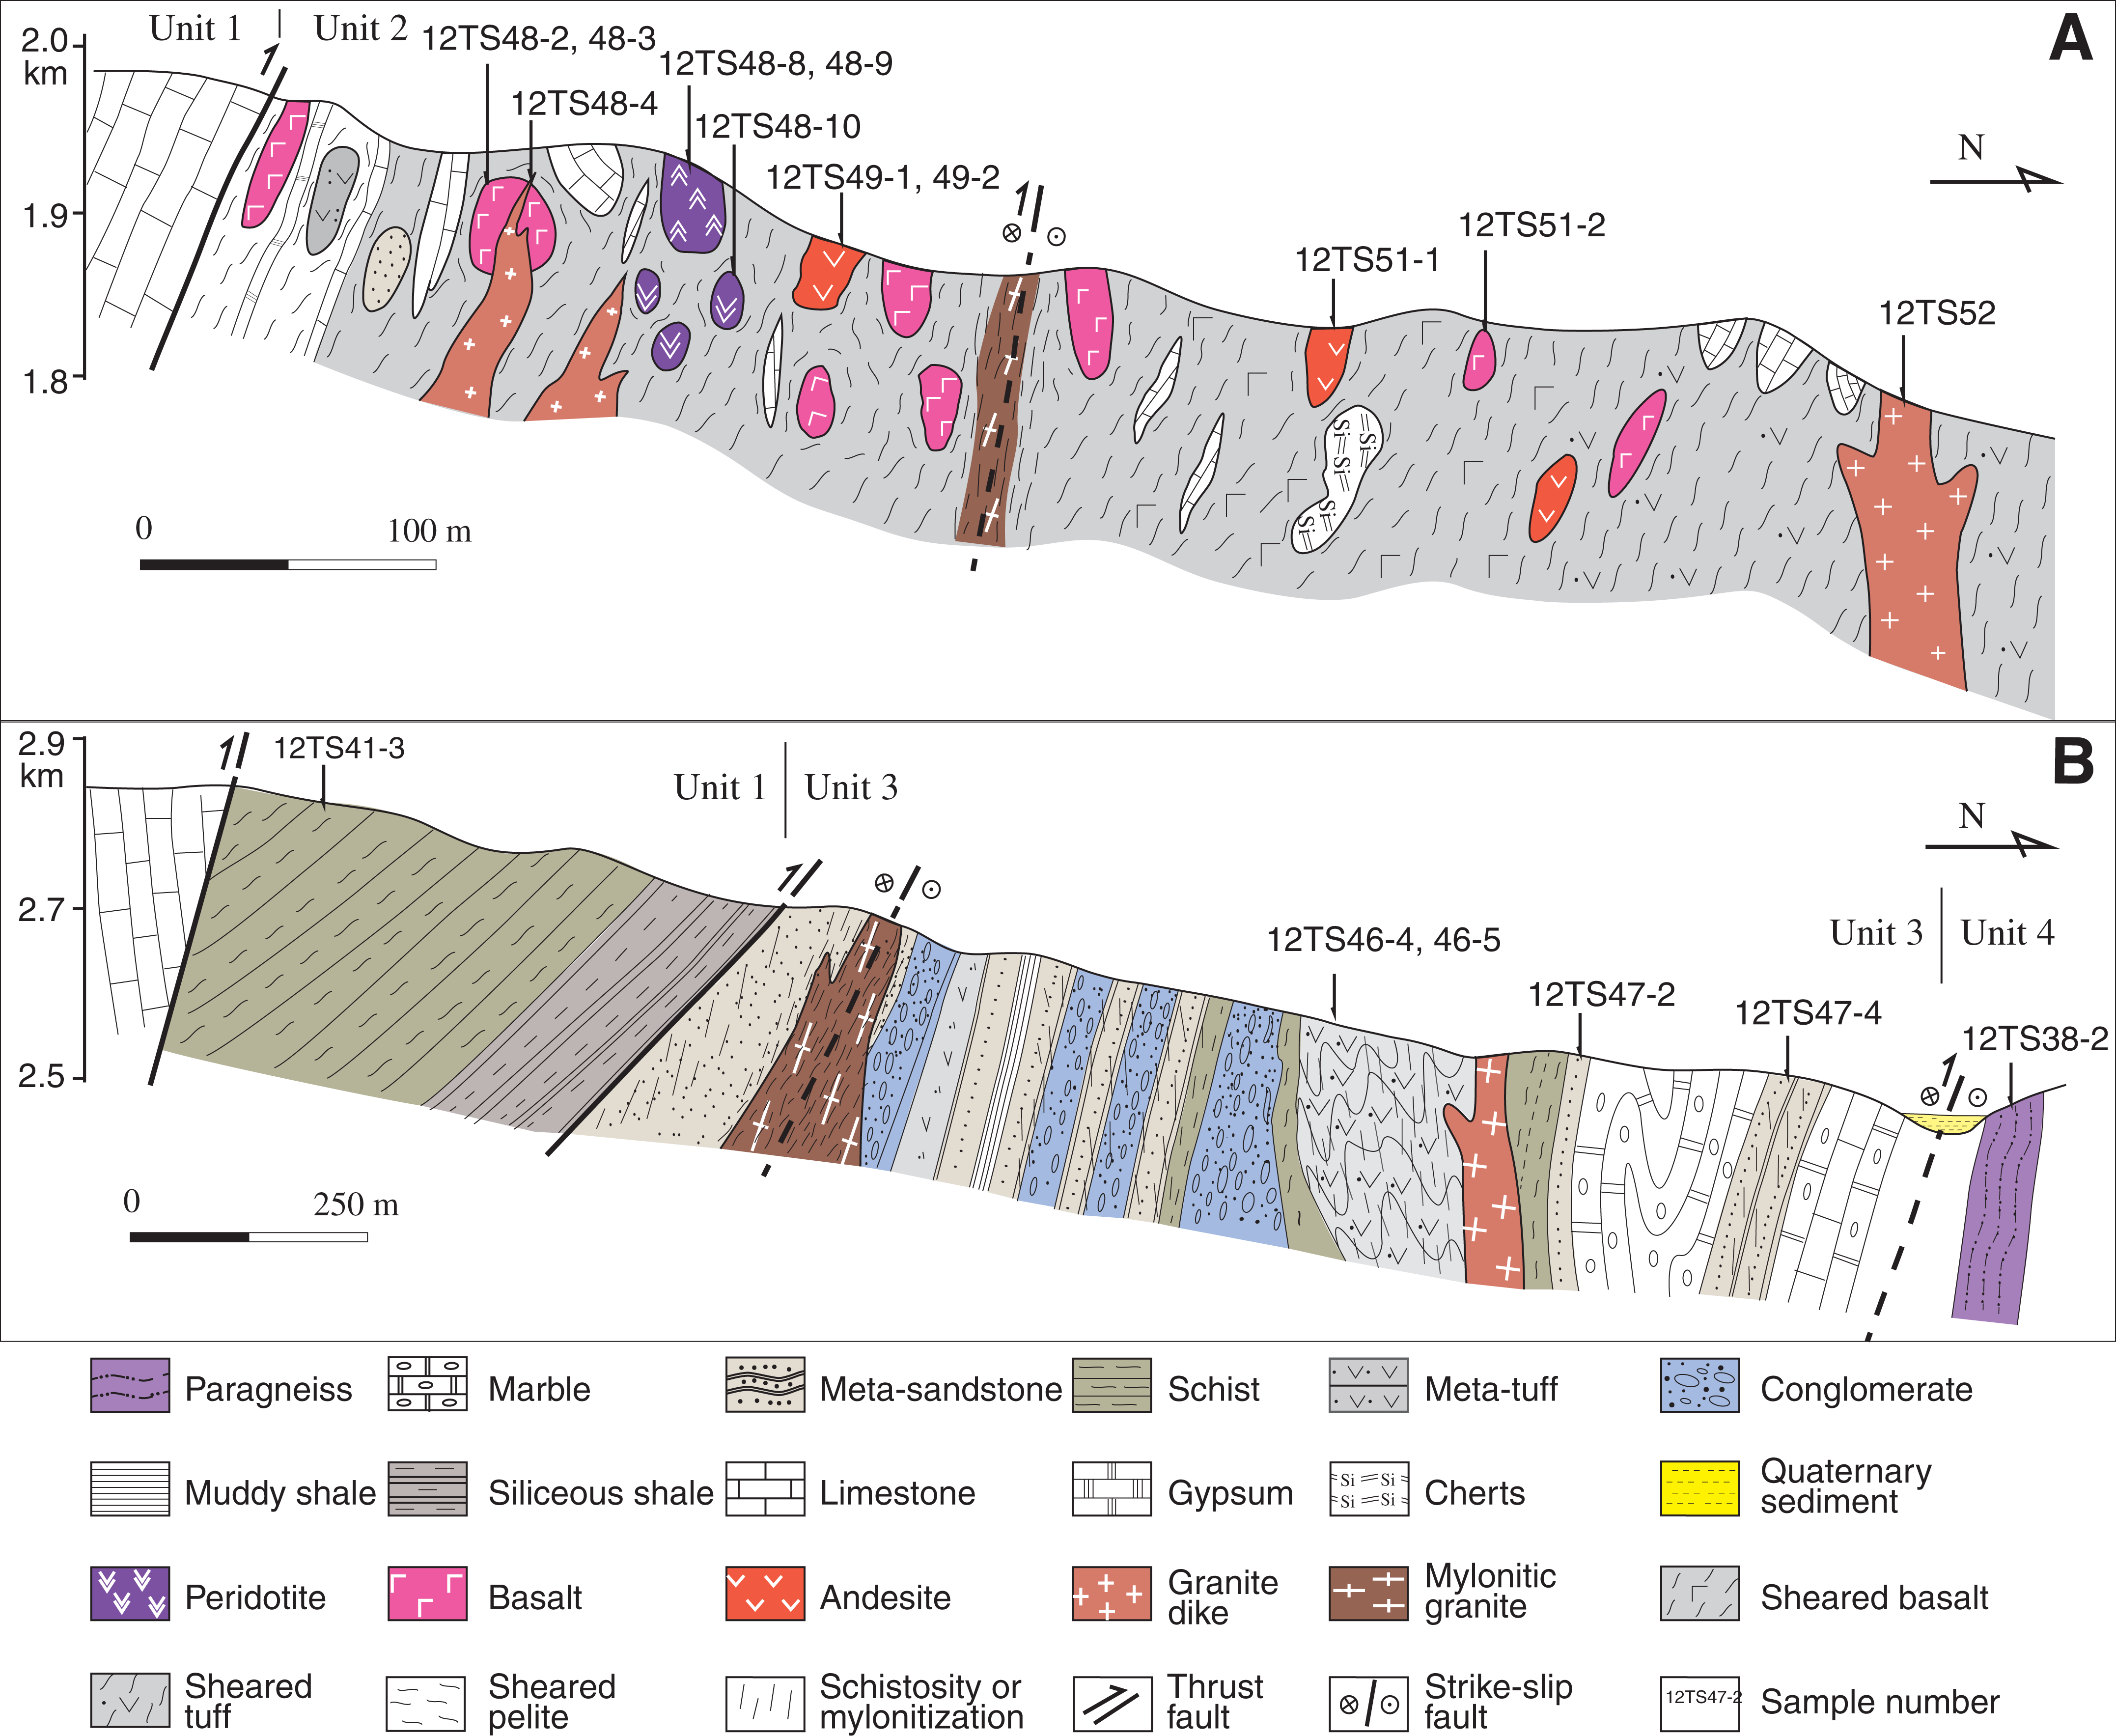 accretionary tectonics of back arc oceanic basins in the south